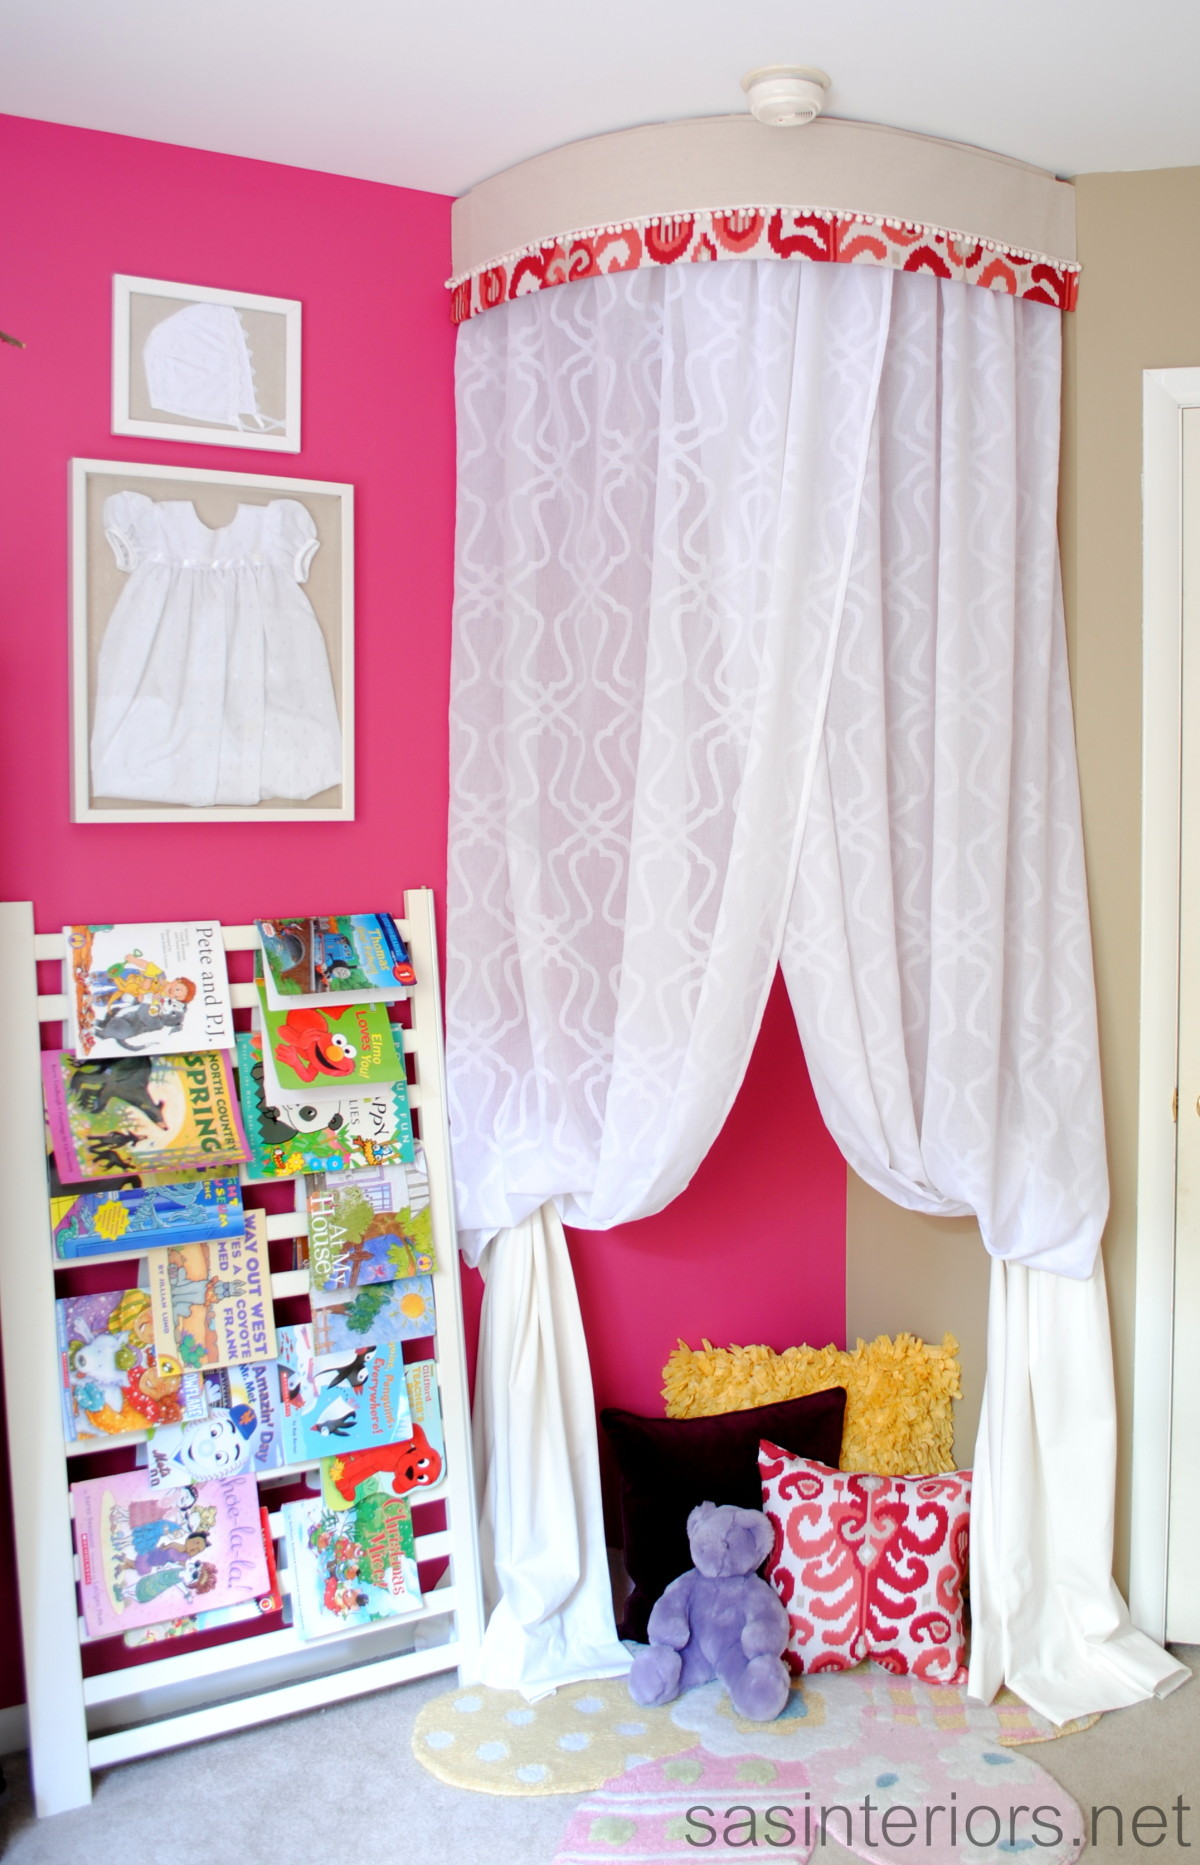 & DIY: 3 in 1 Kids Play Tent - A Loweu0027s Creative Idea - Jenna Burger